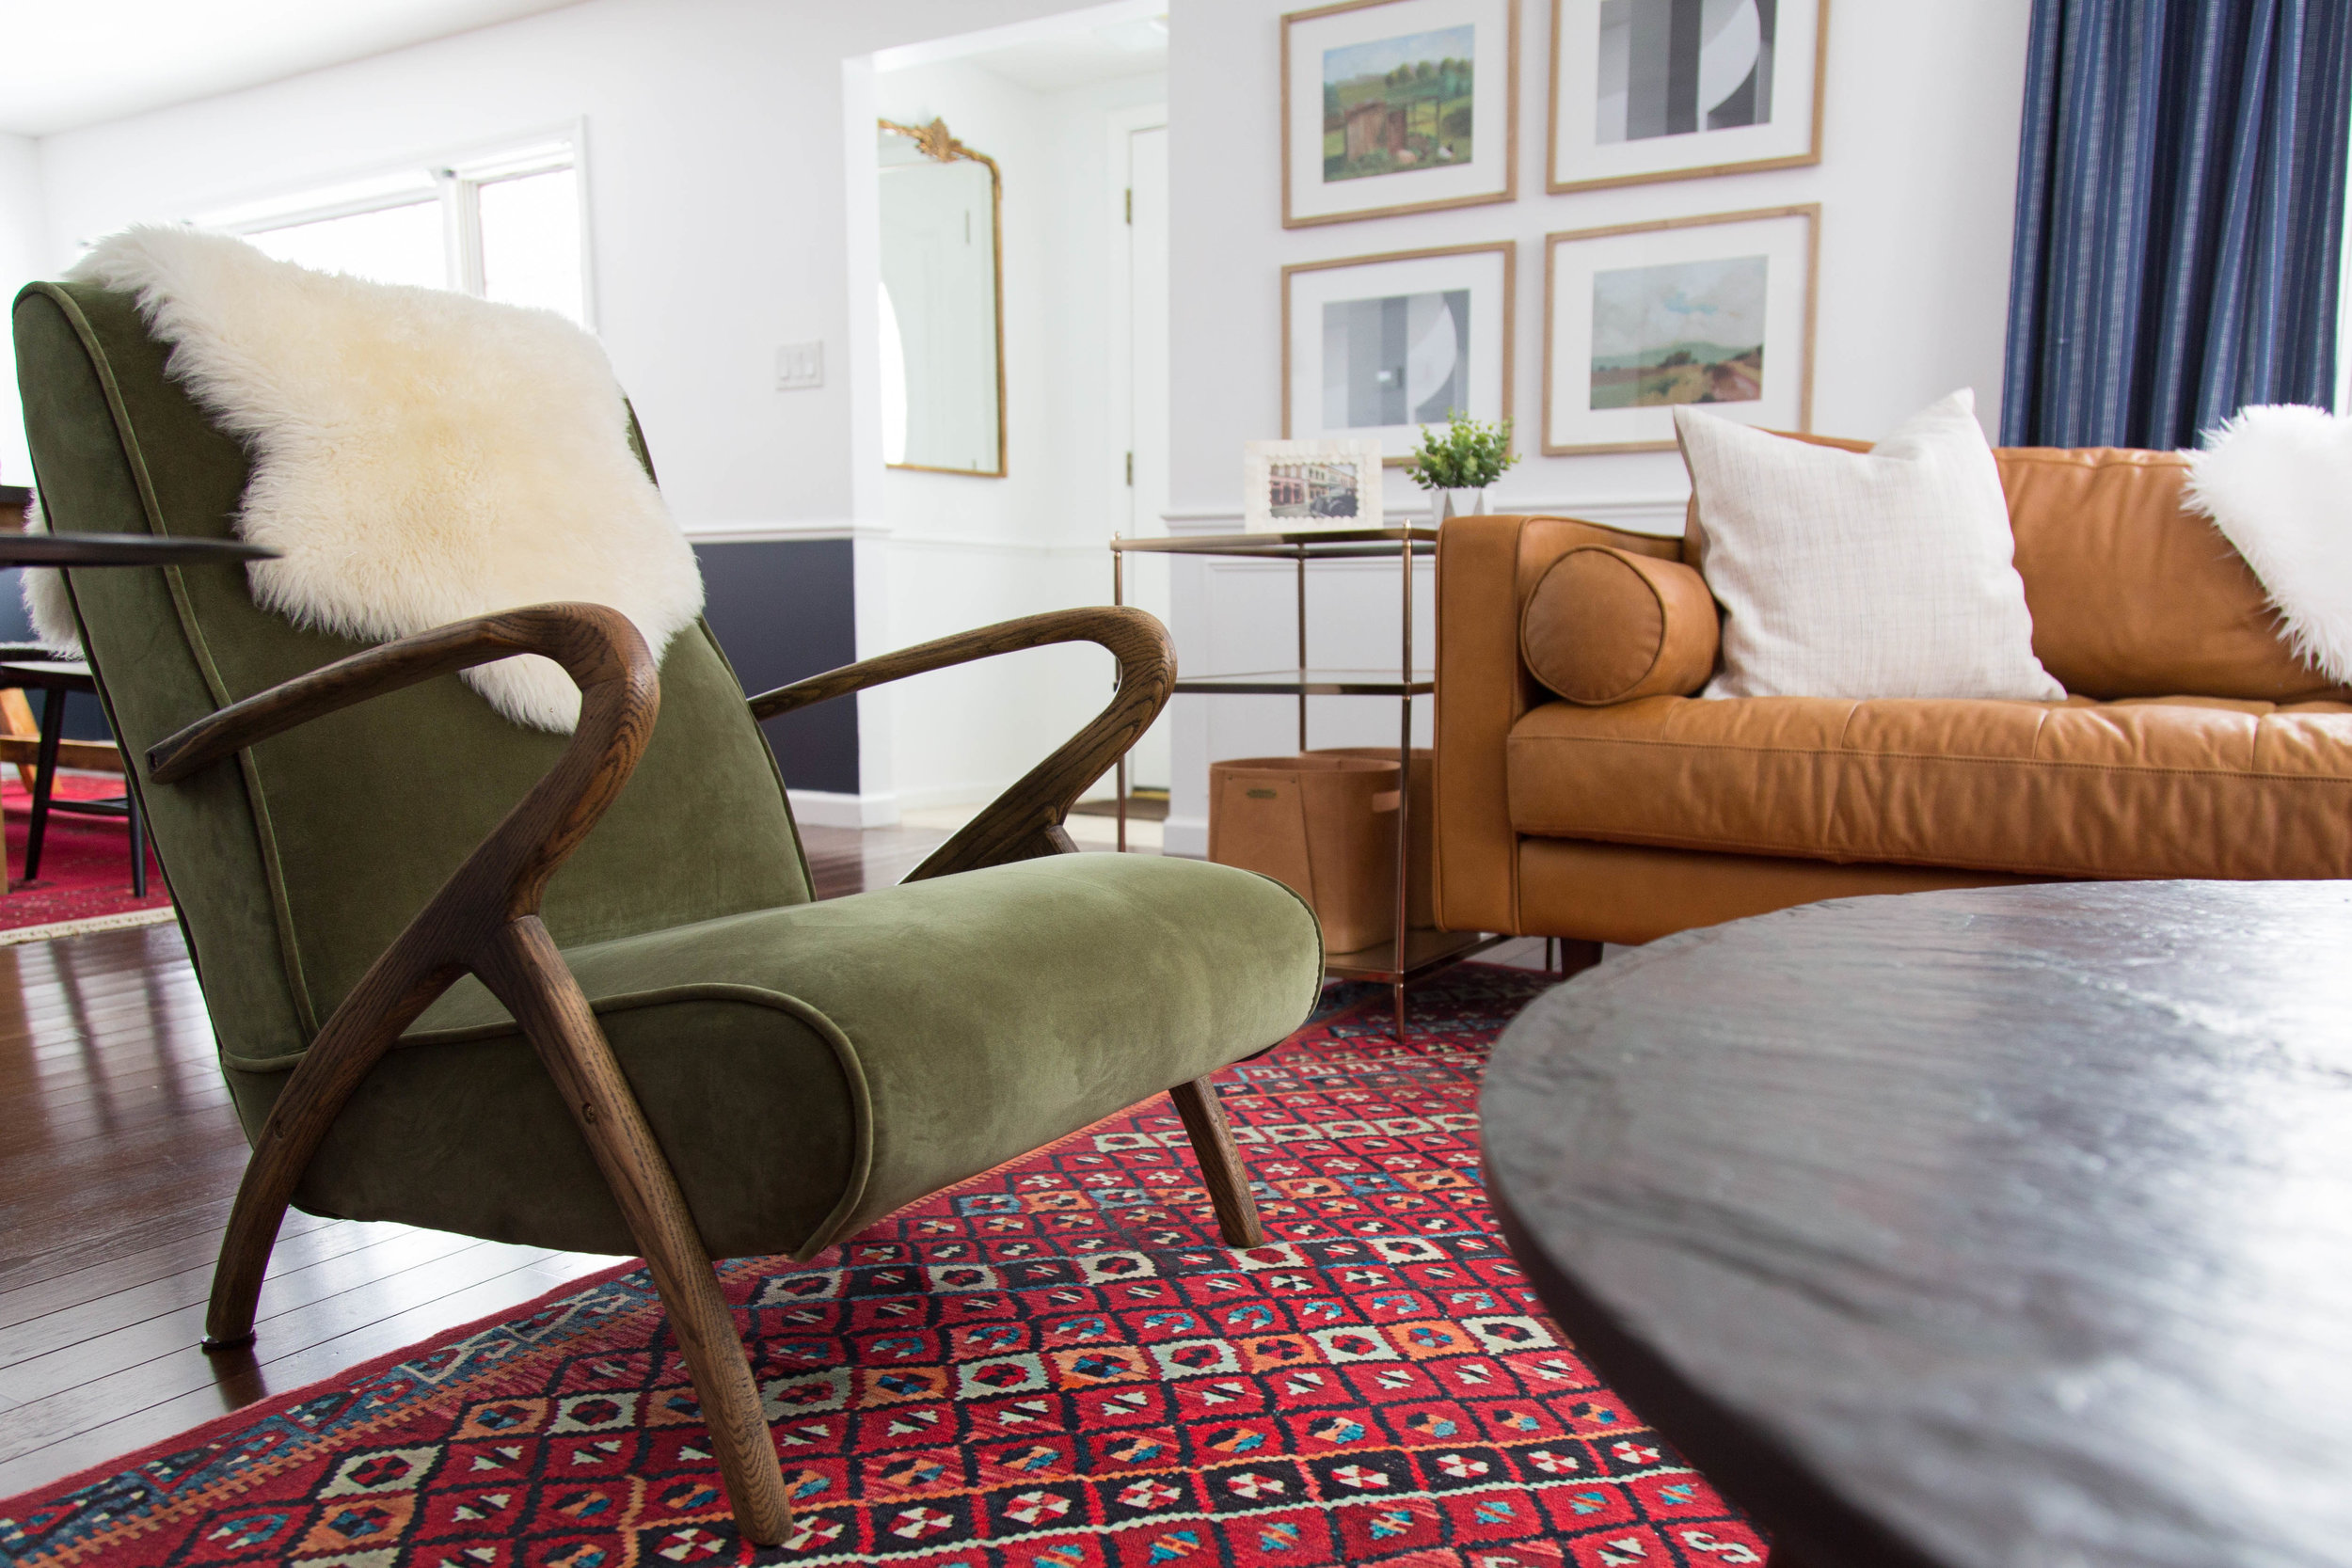 Green chair and camel leather couch in living room, Georgetown, NY